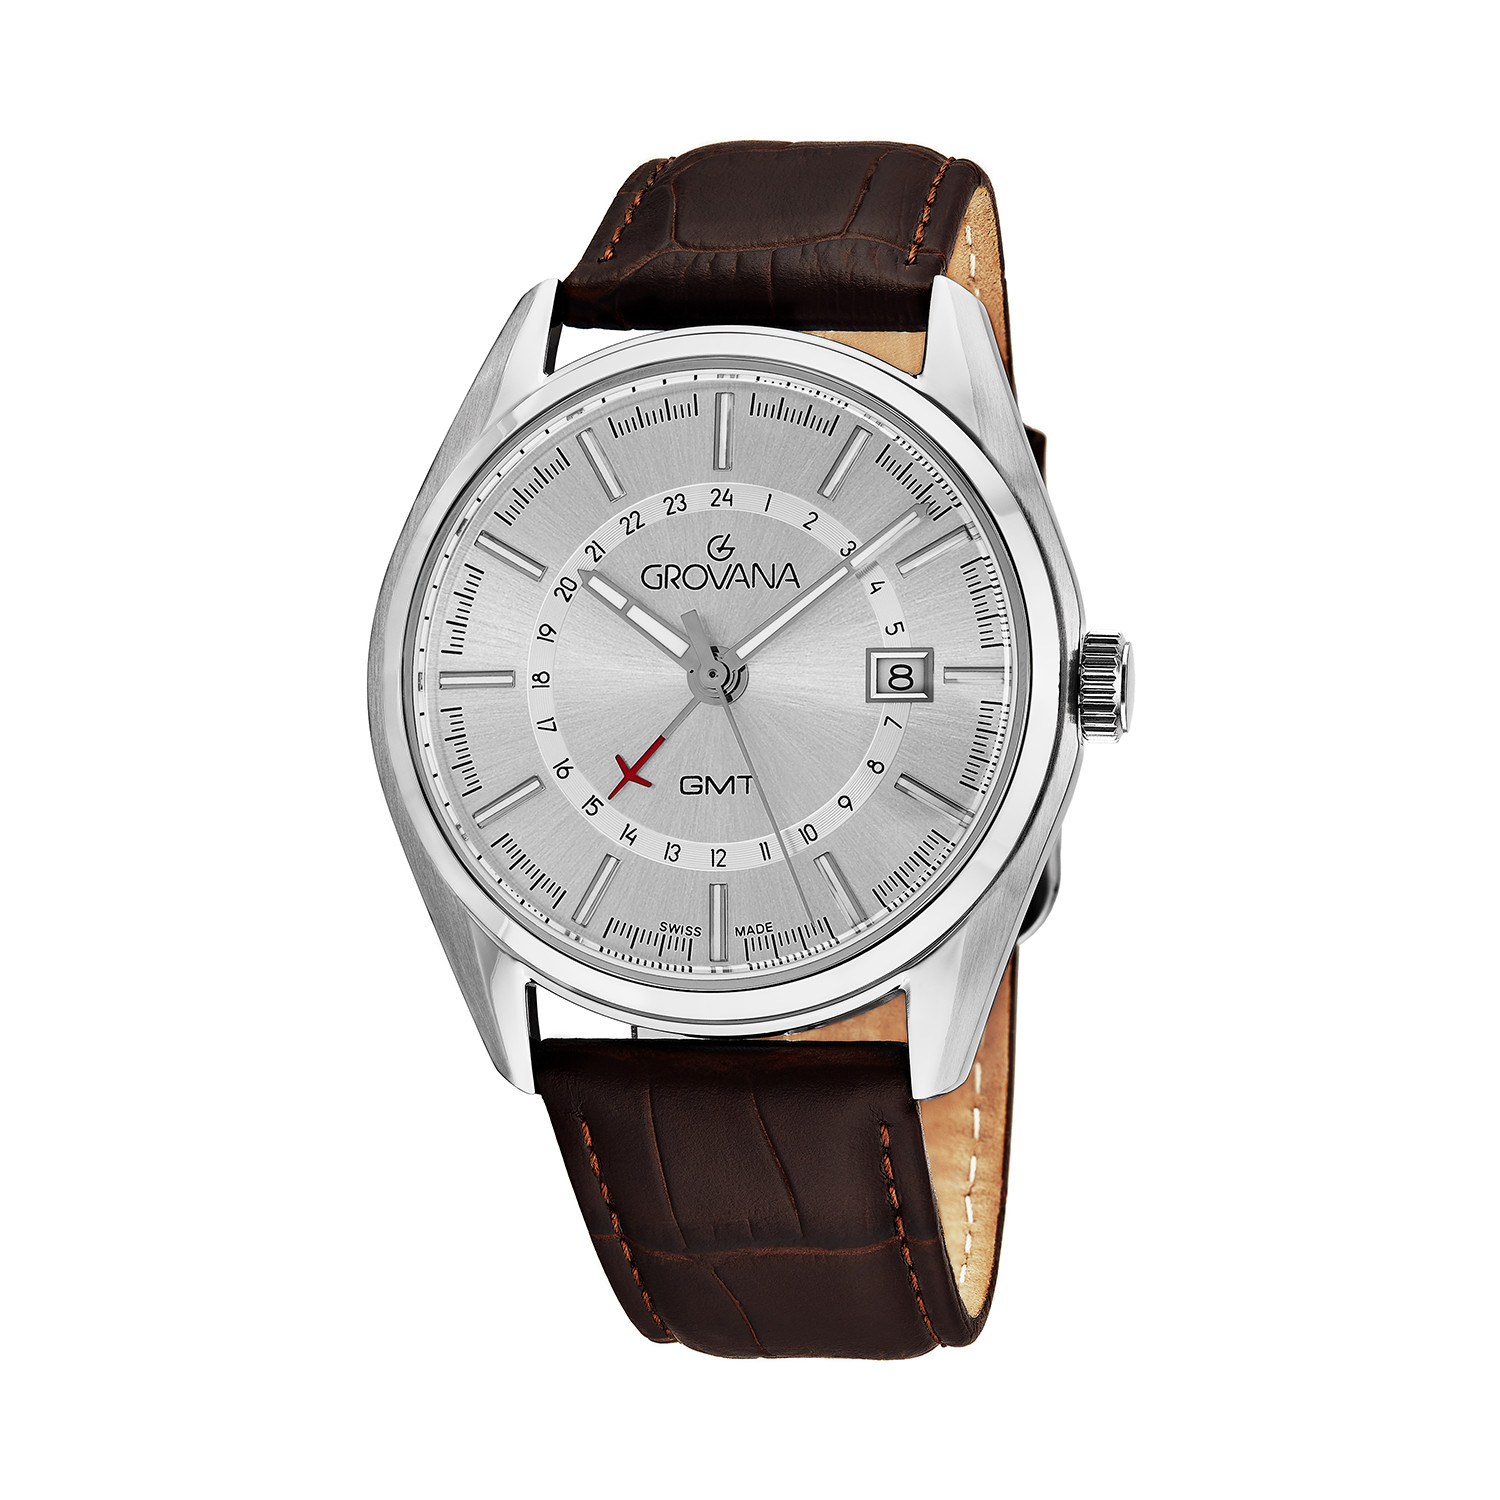 Grovana Quartz // 1547.1532 - Swiss timepieces